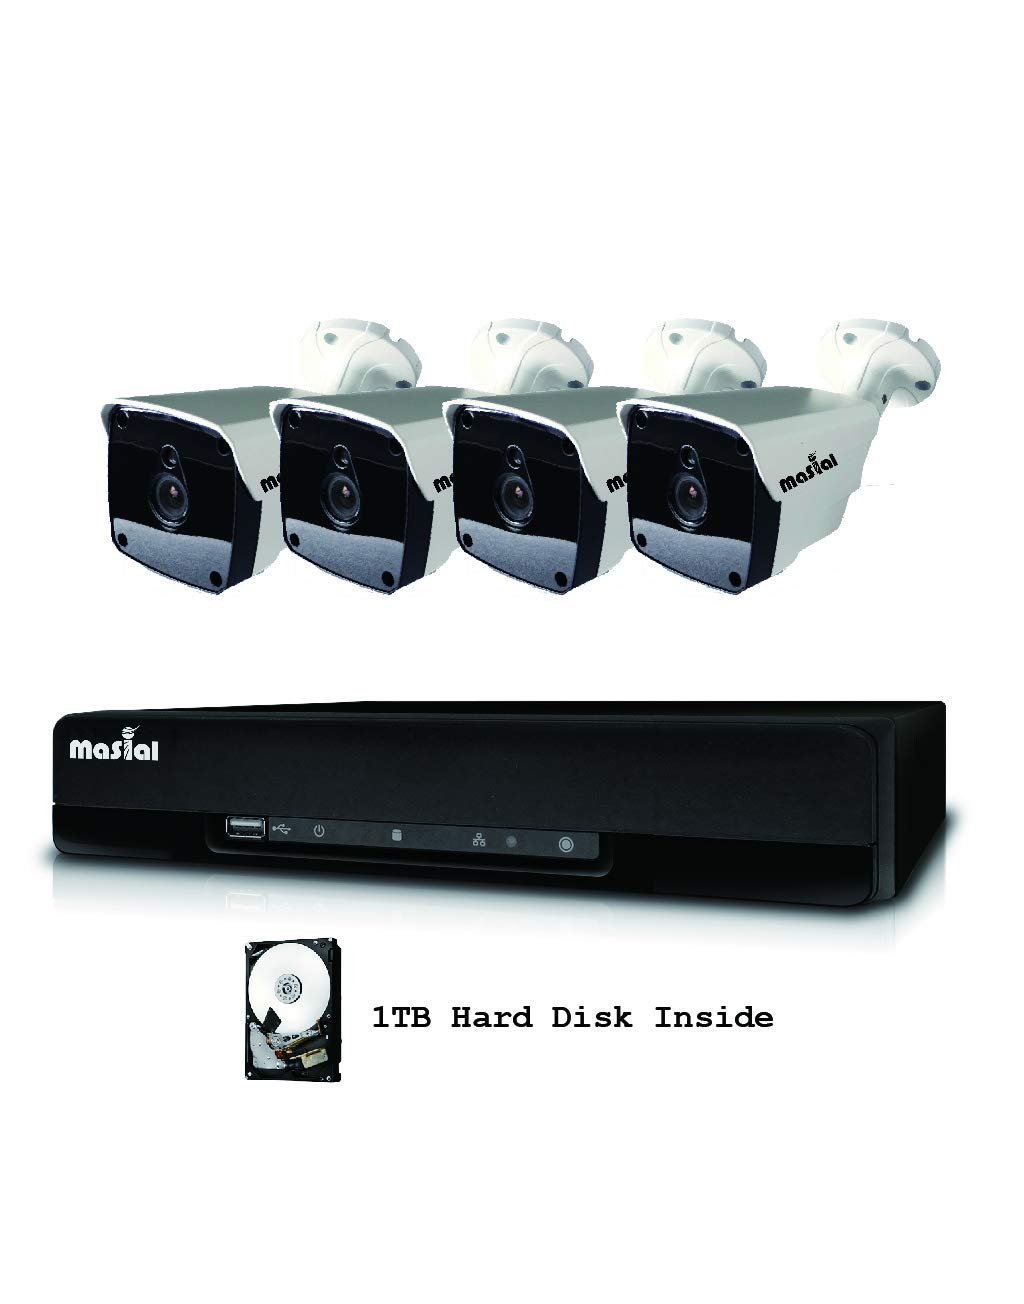 Masial 8CH Home Security Camera System, 1080P DVR Recorder Supports HD-AHD/TVI/CVI, with 4X HD 1080P Indoor Outdoor Weatherproof CCTV Cameras, 1TB Hard Drive, Smartphone, PC Easy Remote Access